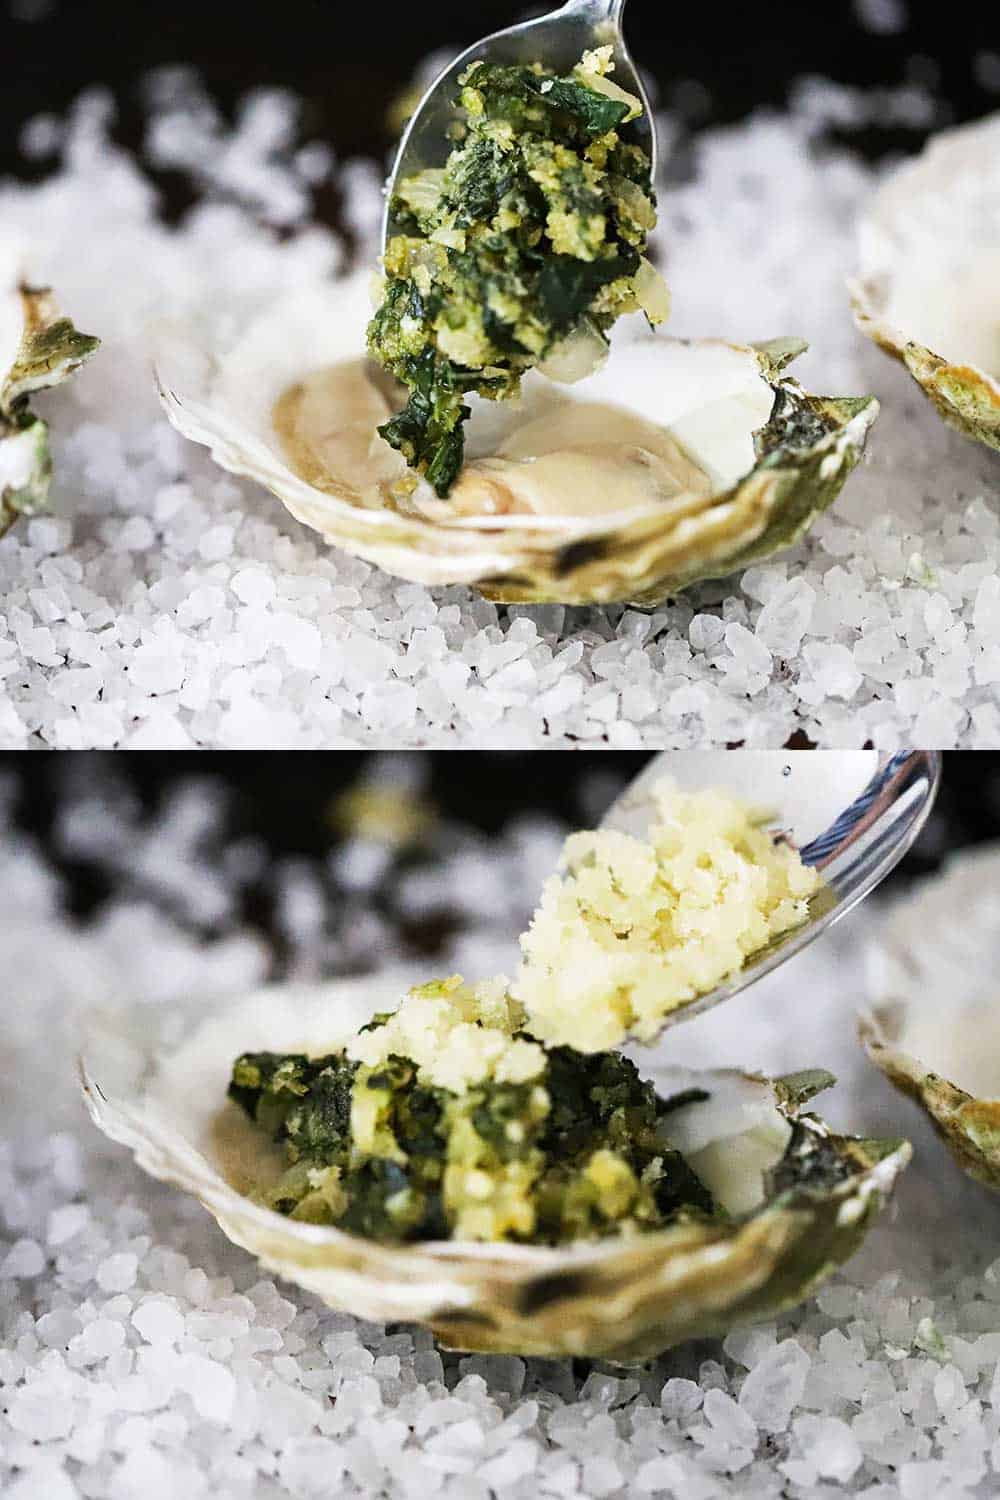 A spoon transferring a spinach mixture on top of an oyster in a shell, and then breadcrumbs being sprinkled on top.